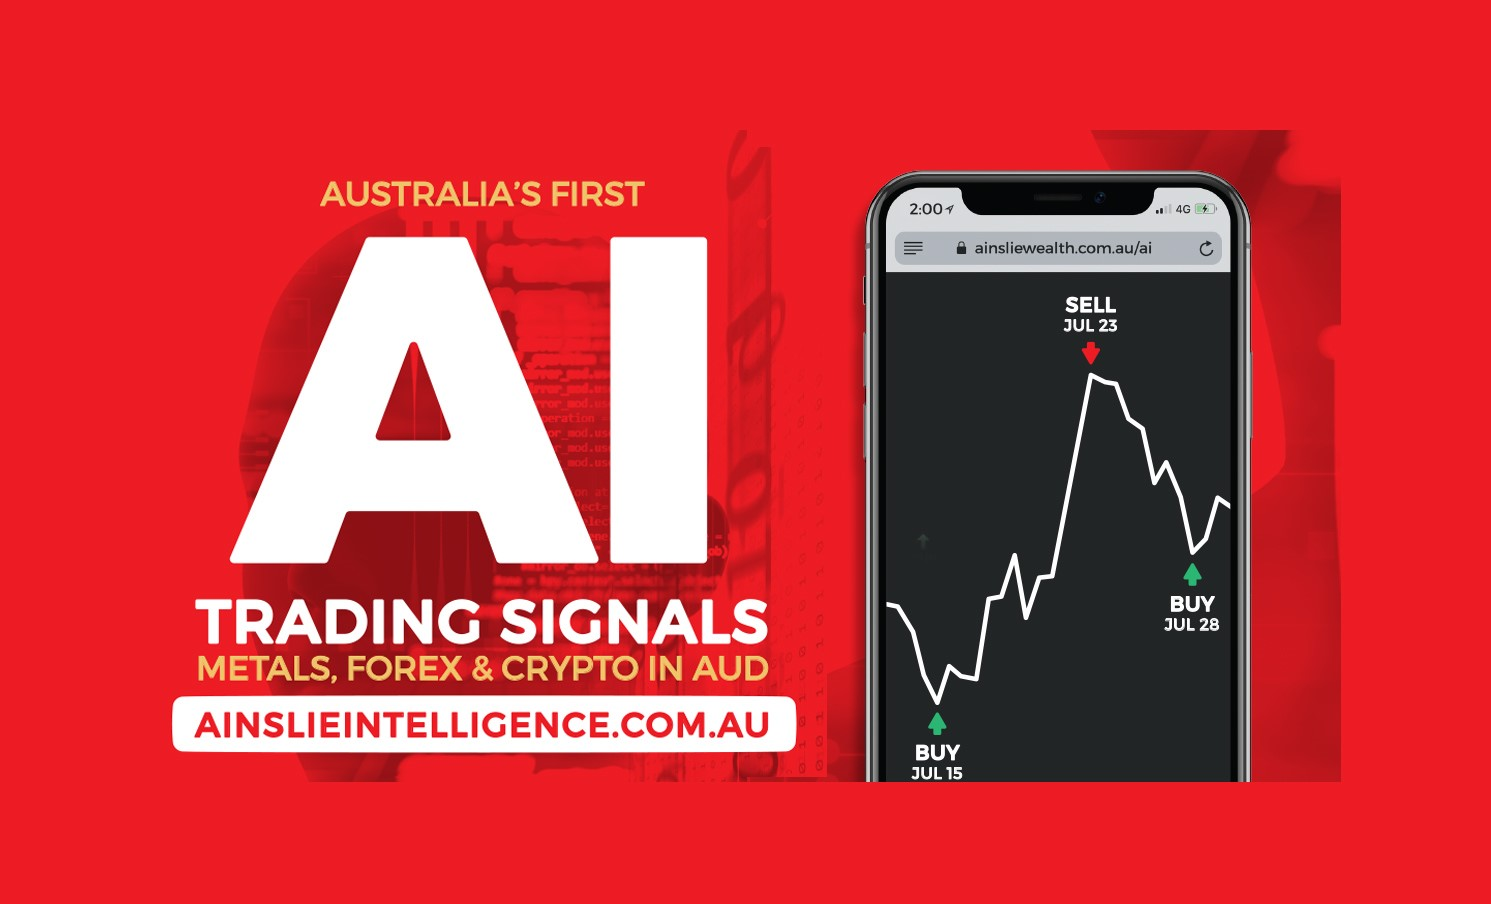 AINSLIE INTELLIGENCE, WEEKLY DIGEST. AI TRADING SIGNALS.